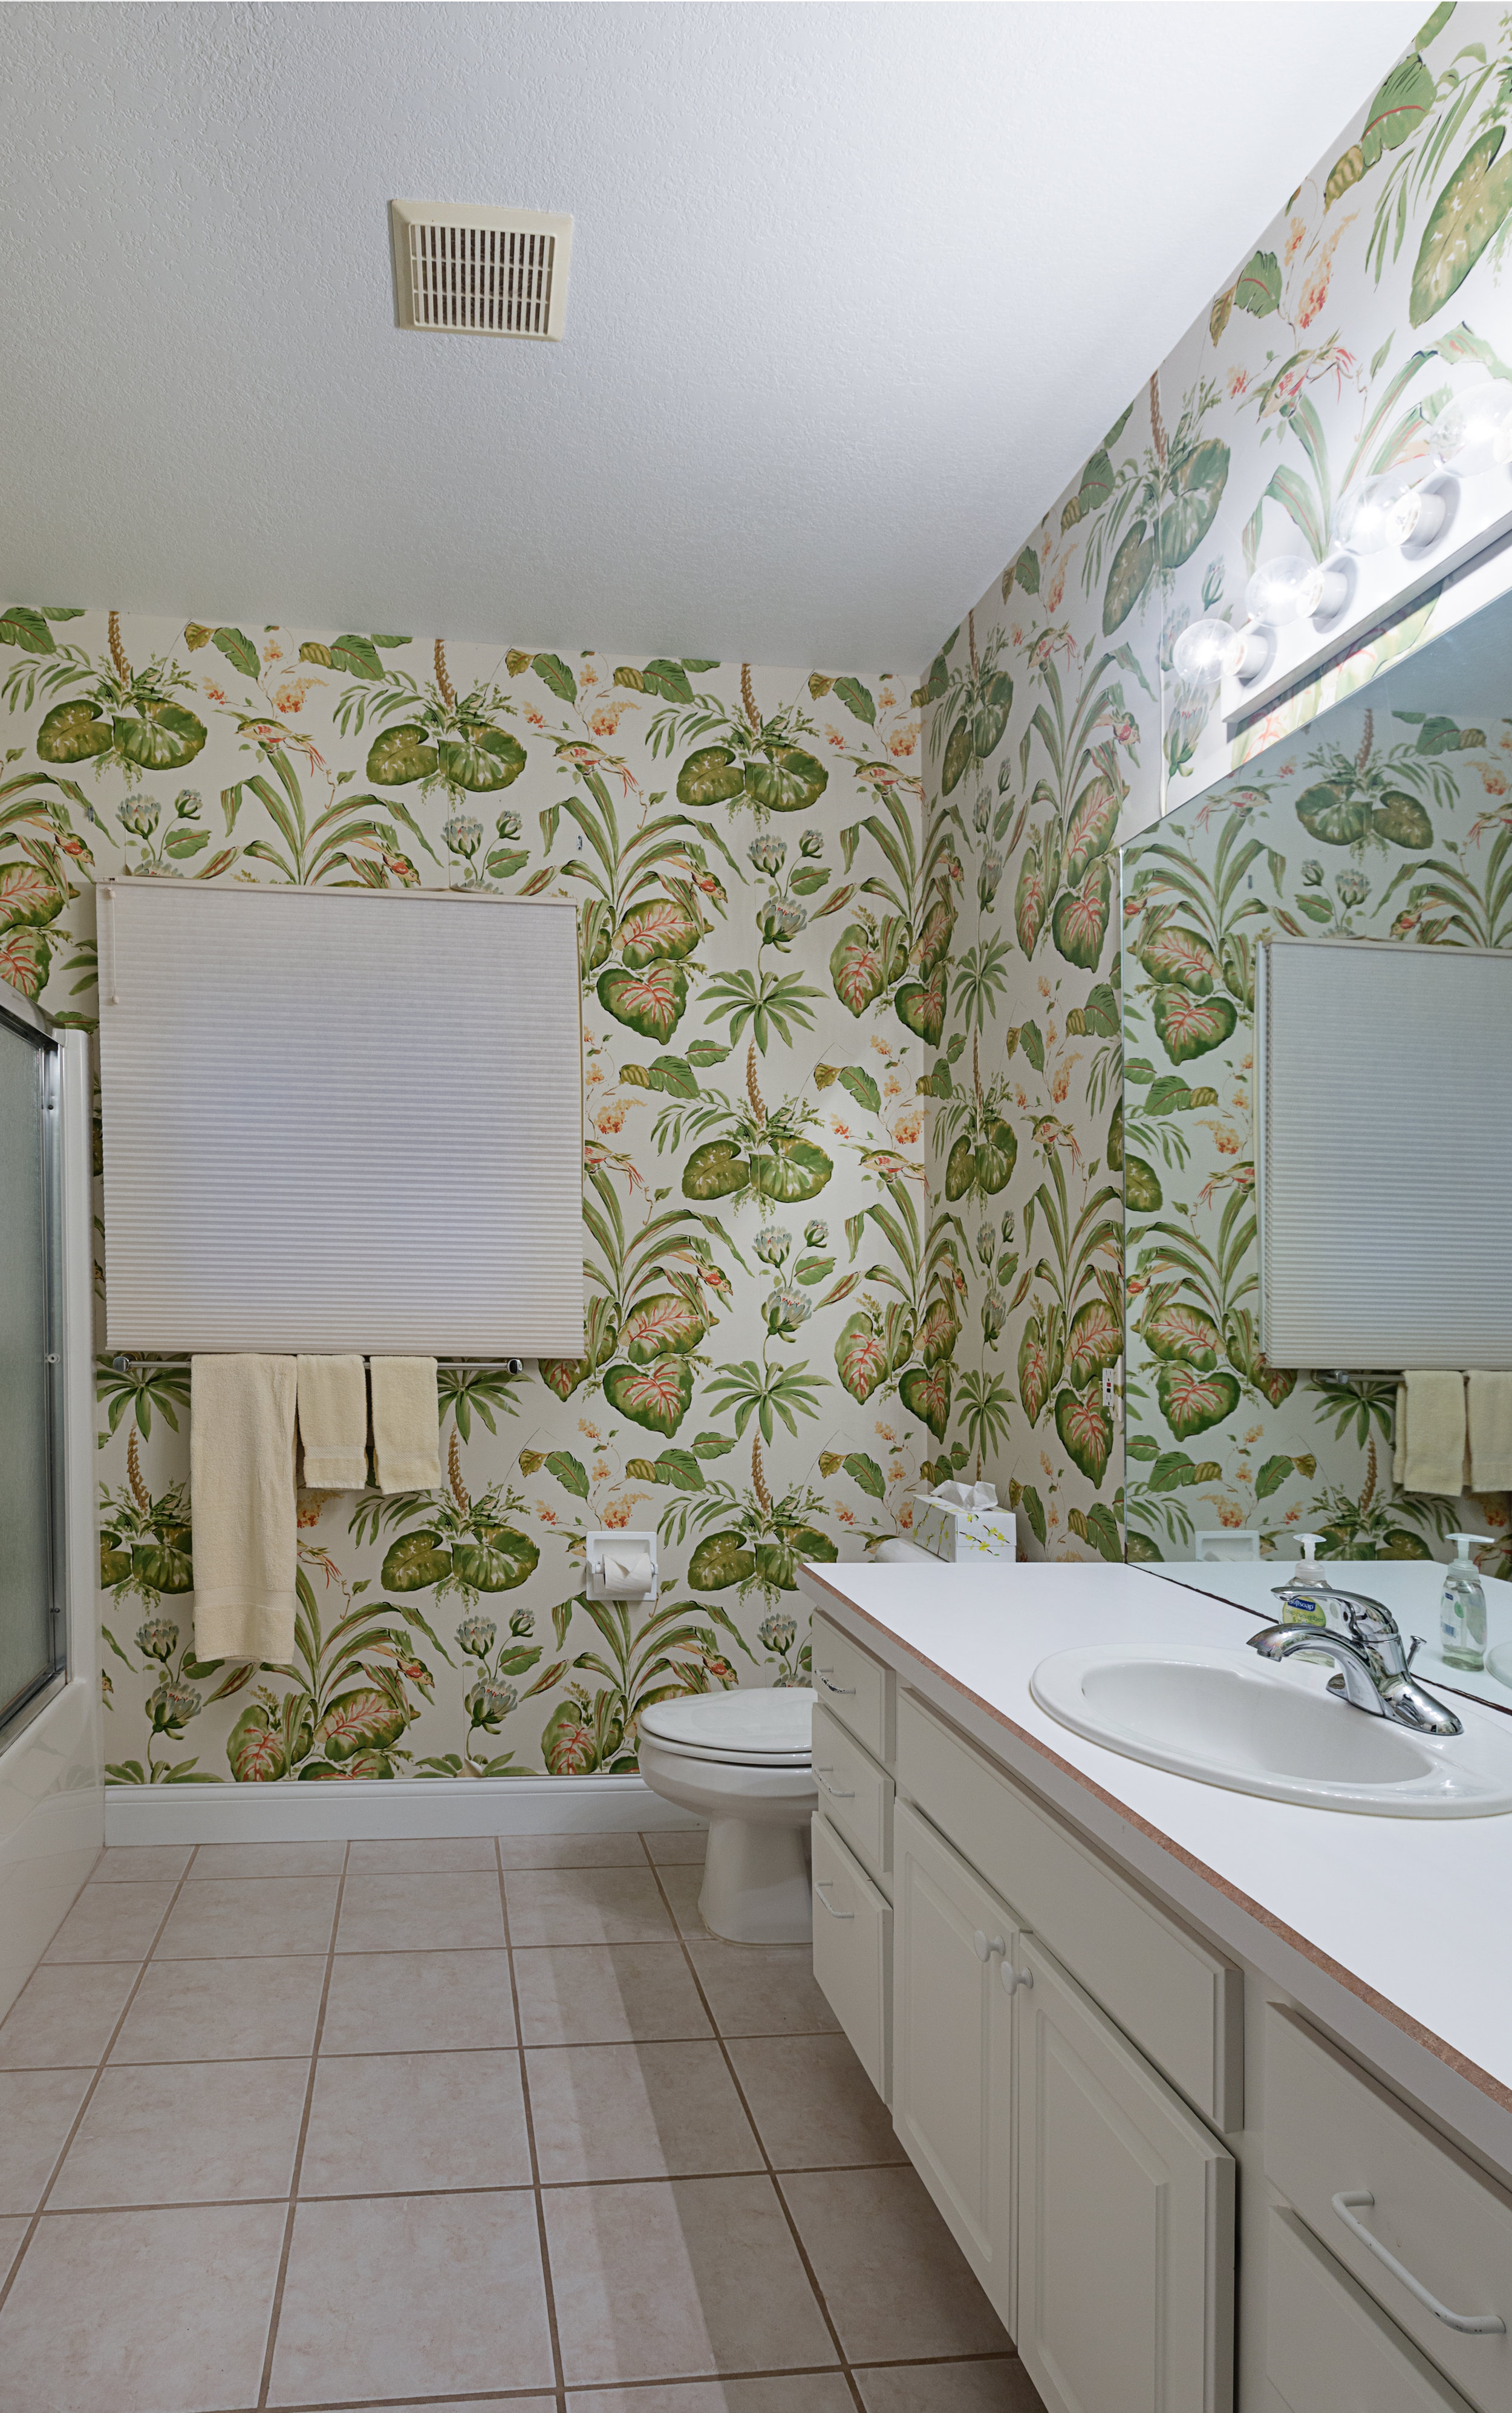 Bathroom2 - Copy.jpg